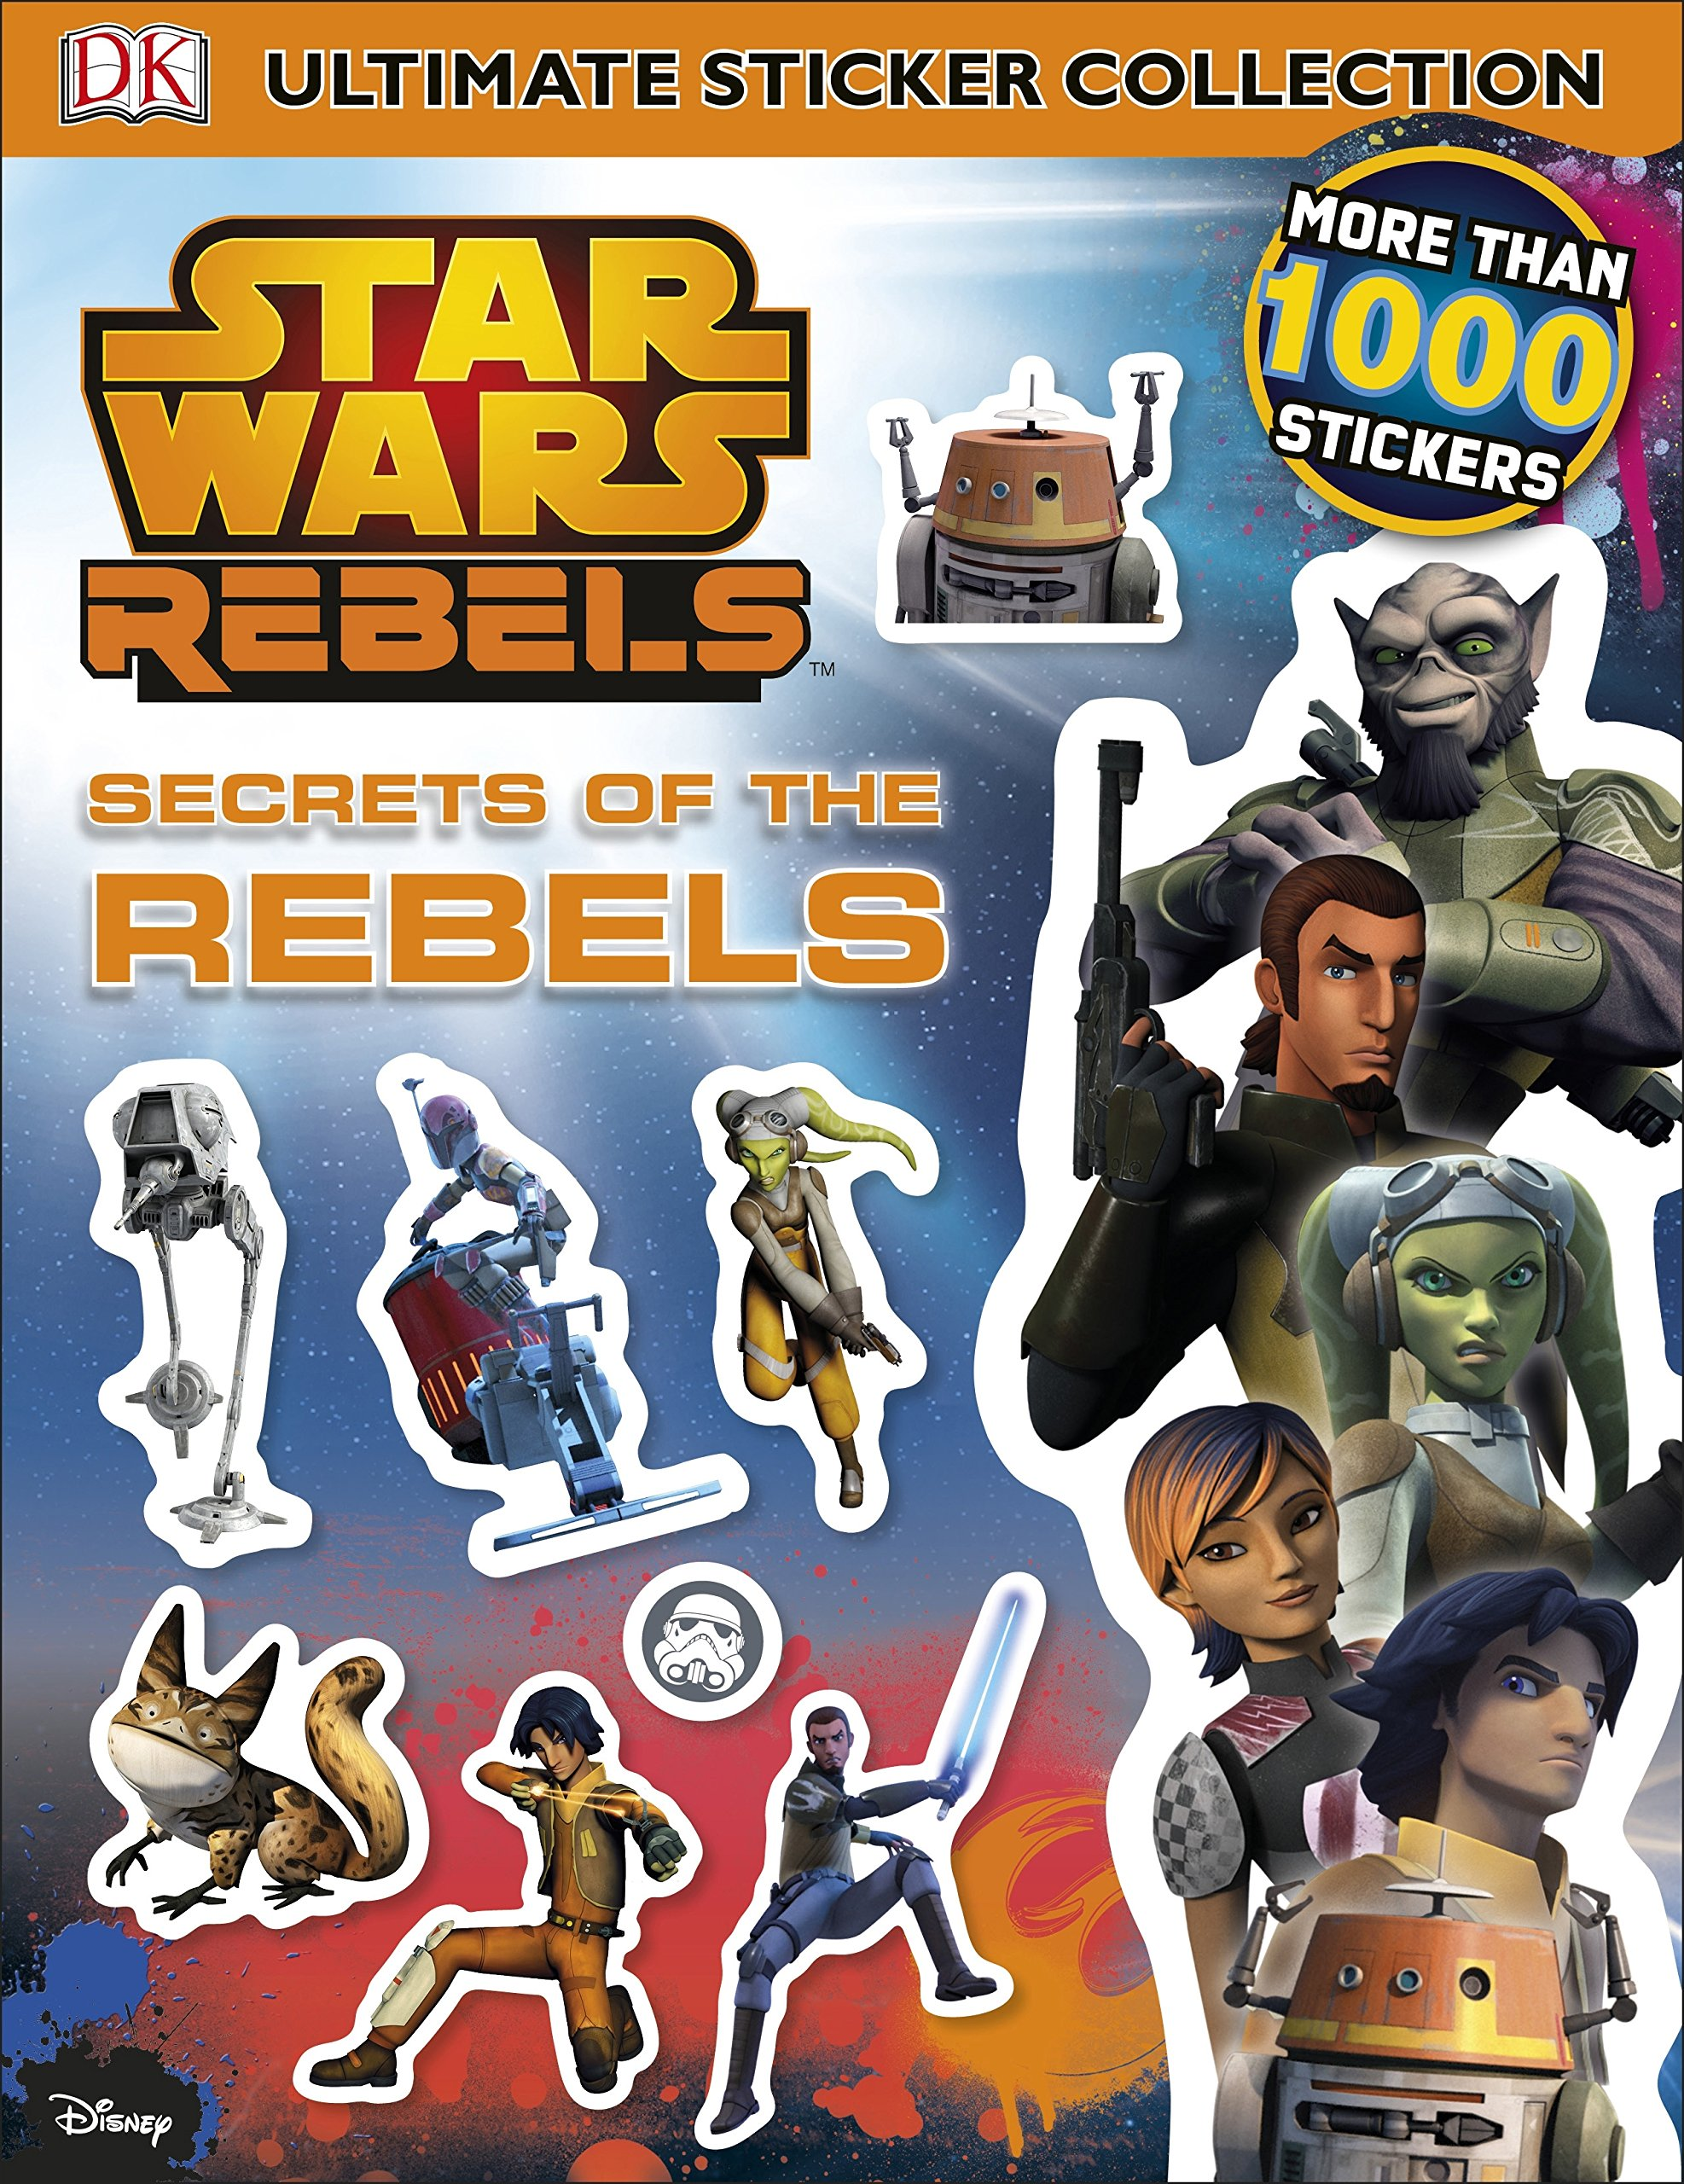 Star Wars Rebels: Secrets of the Rebels Stickerbook